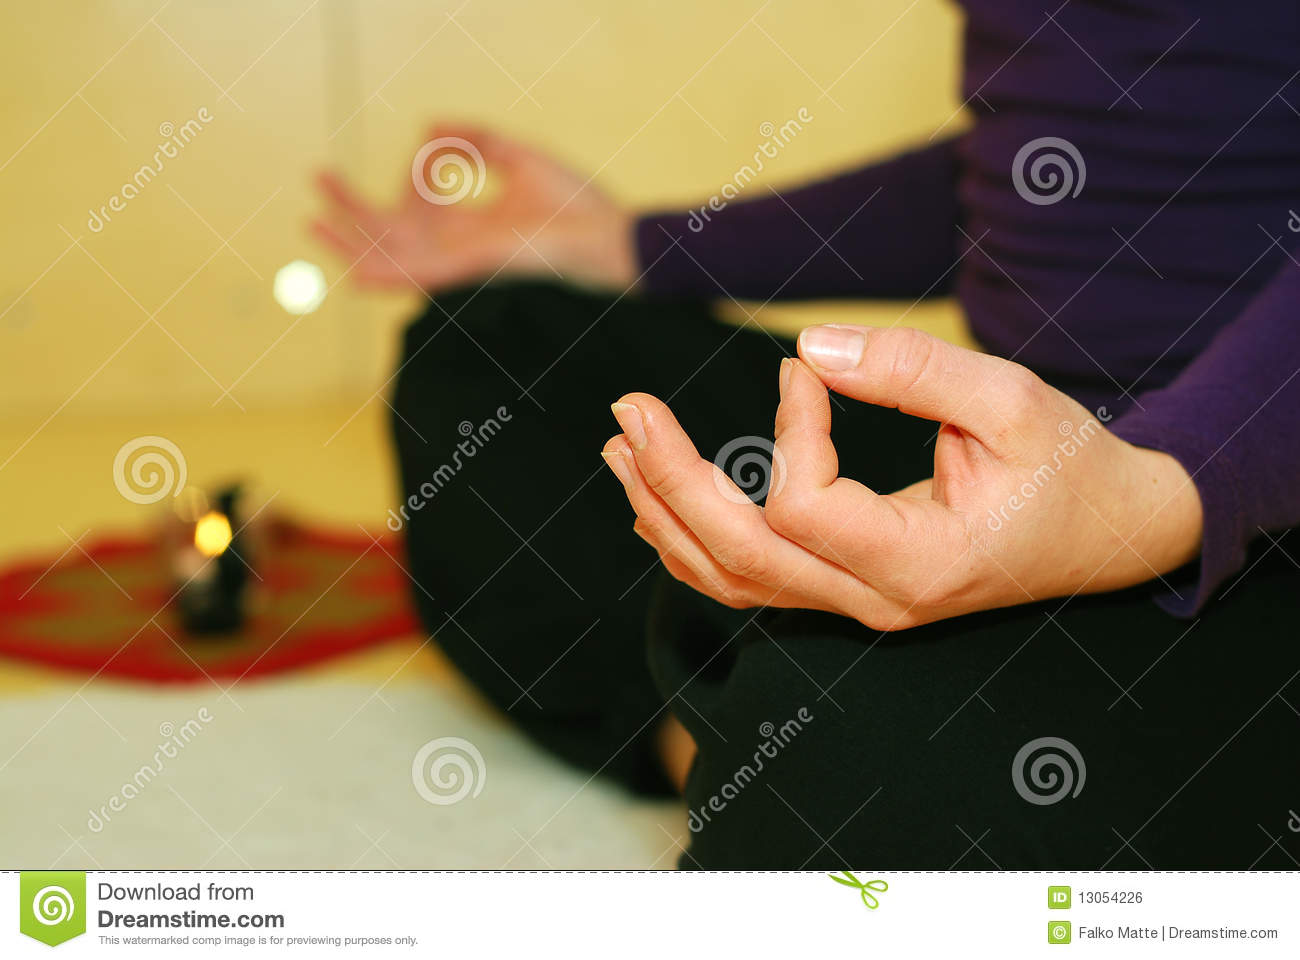 Person in Yoga position